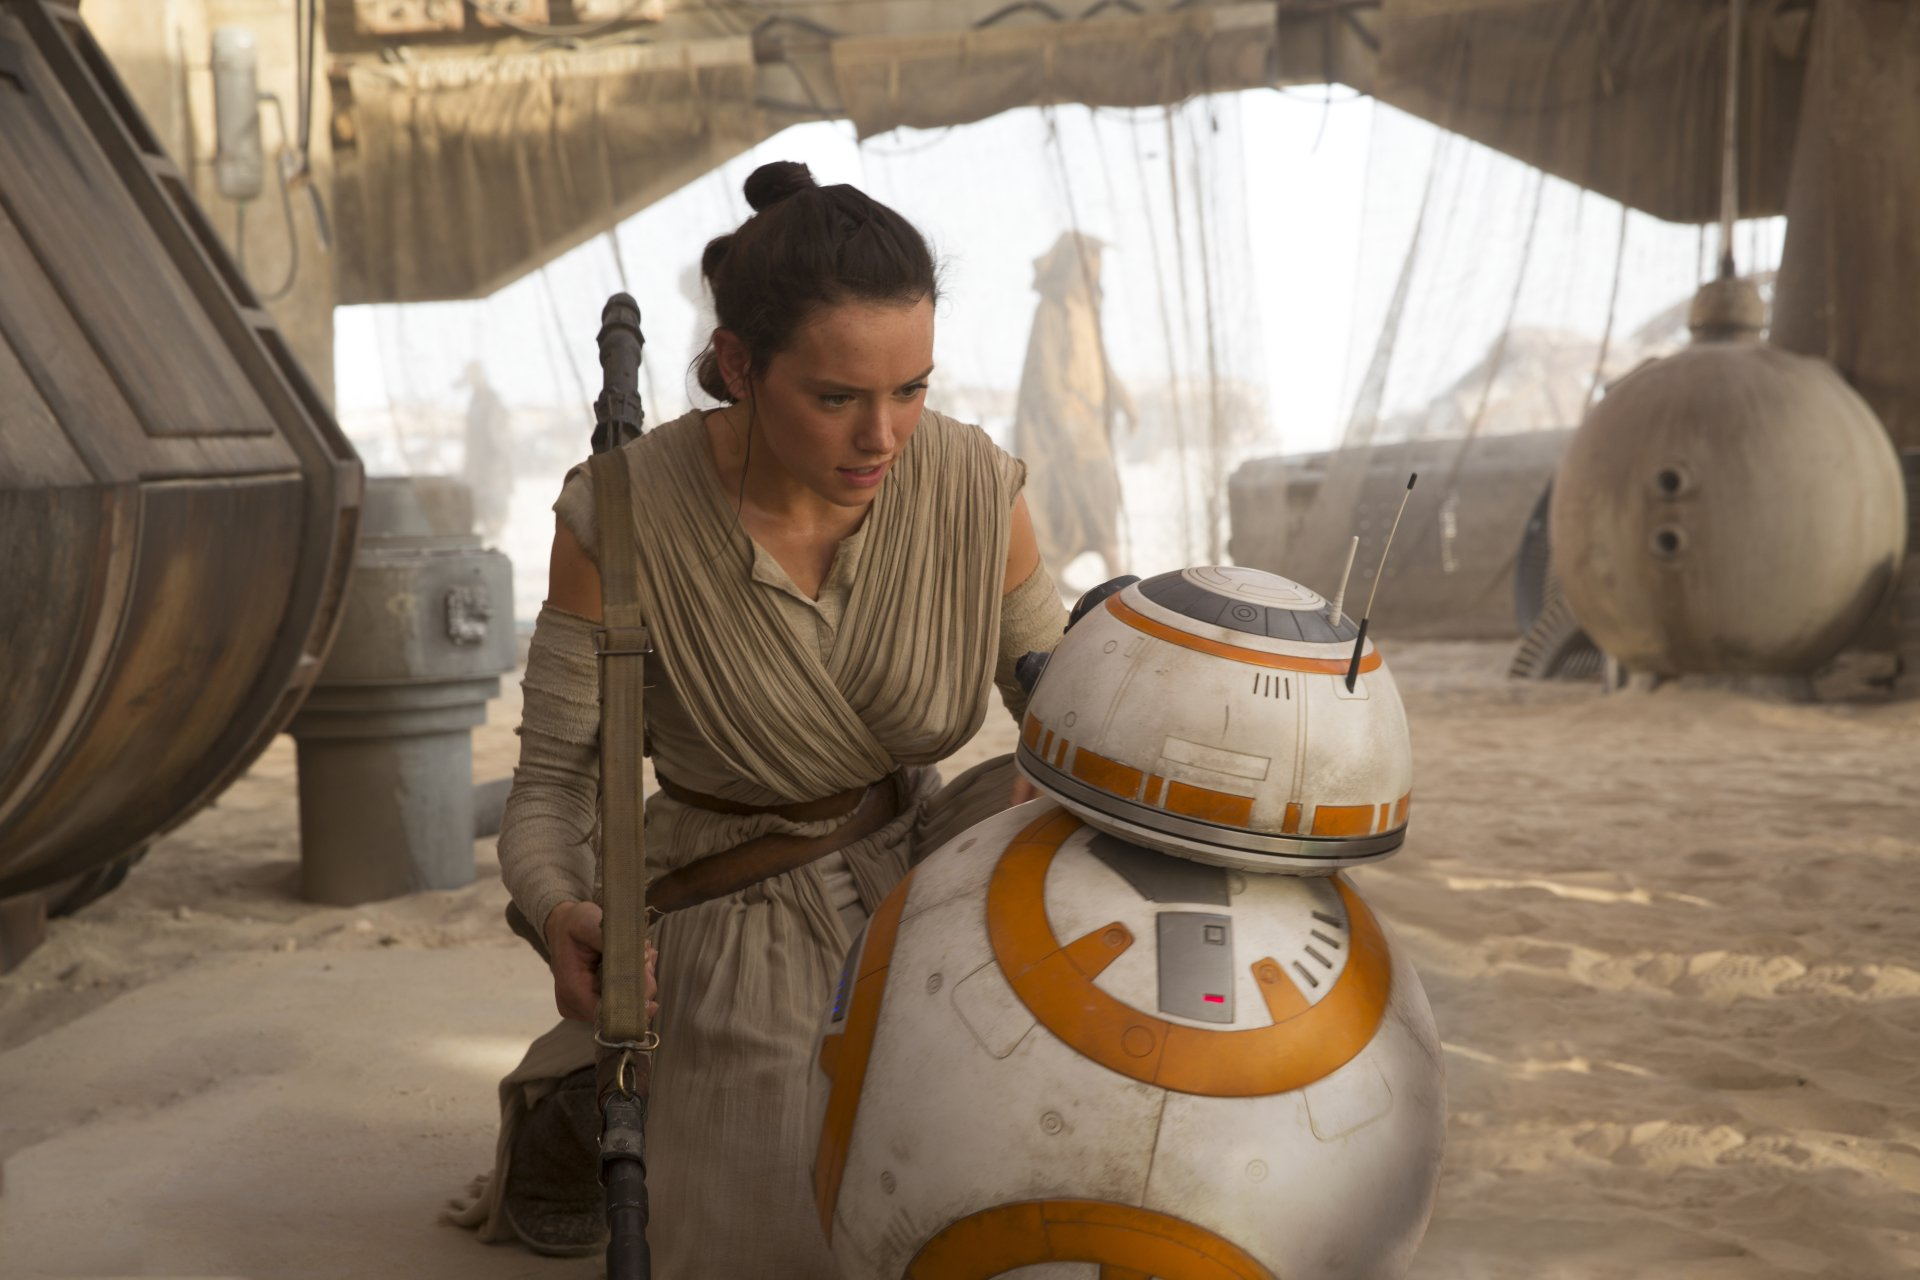 Movie - Star Wars Episode VII: The Force Awakens  Star Wars Rey (Star Wars) Daisy Ridley BB-8 Wallpaper